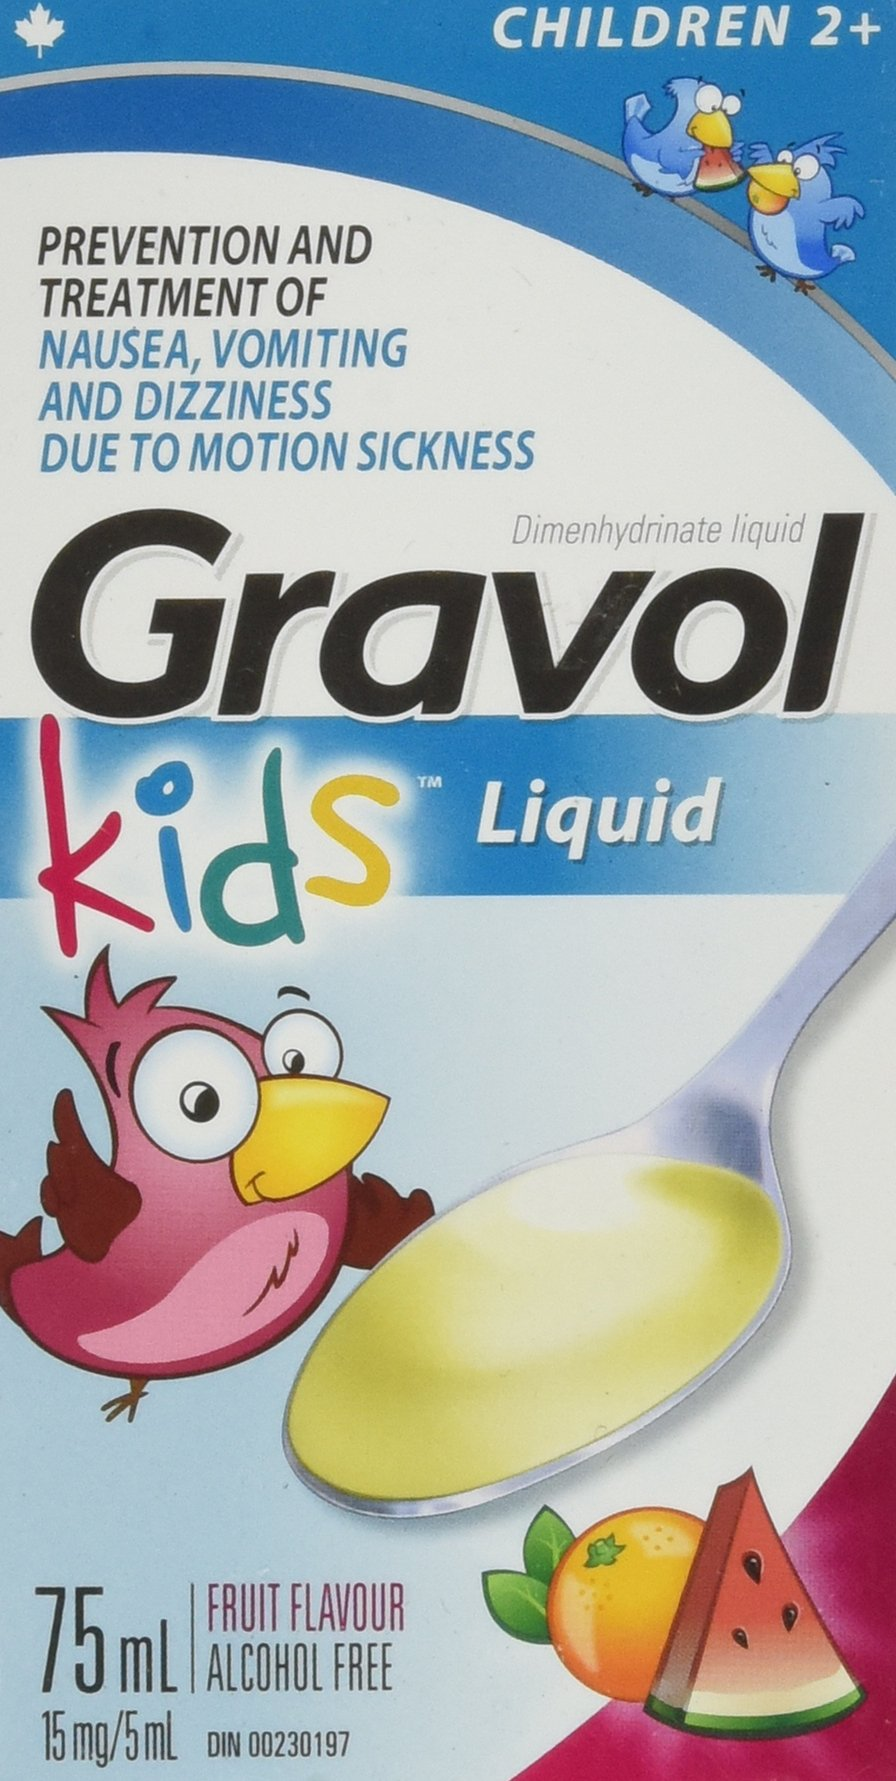 Children's Liquid GRAVOL for NAUSEA, VOMITING, DIZZINESS & MOTION SICKNESS Ages 2+ (75ml size) by Gravol